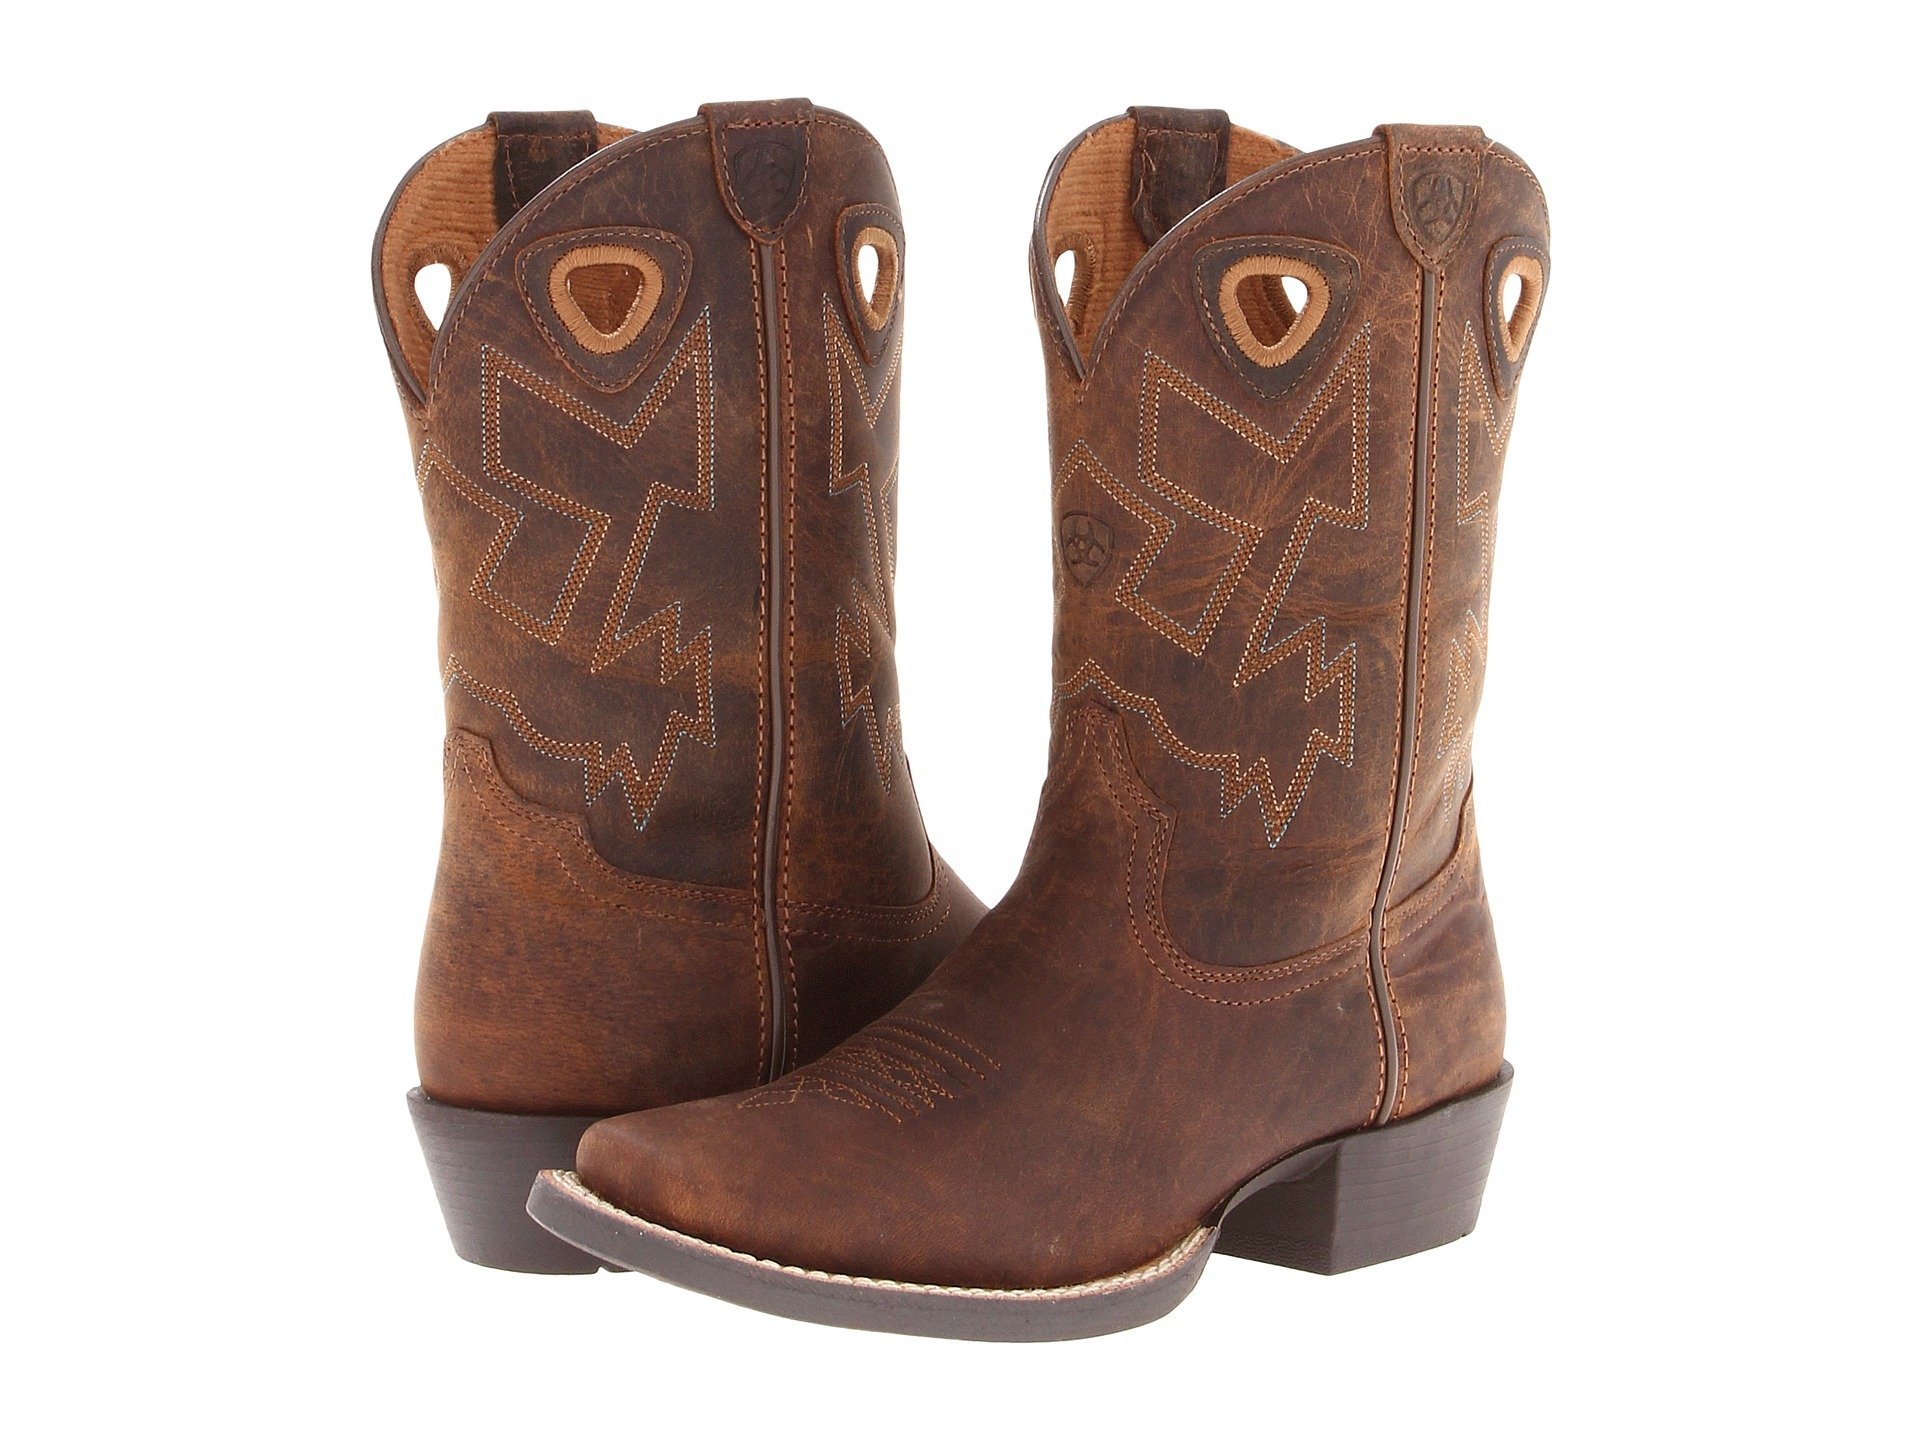 Ariat Kids Boots Girls Shipped Free At Zappos